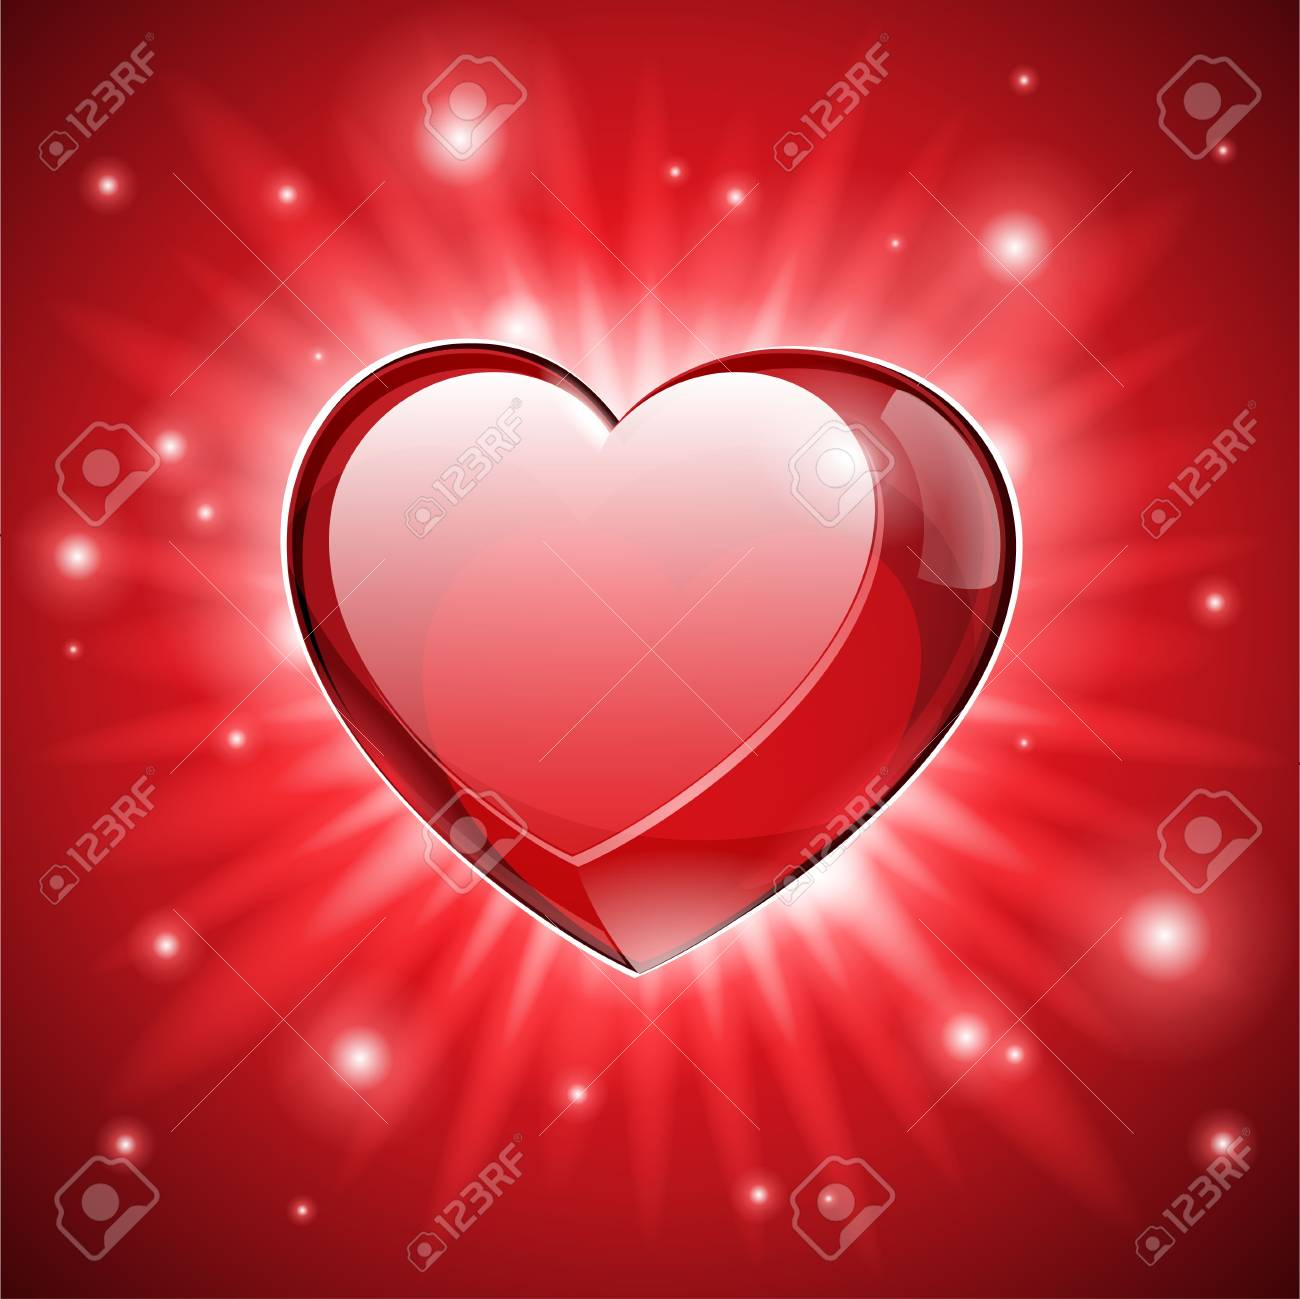 Explosion Red Glass Shiny Lovely Heart Valentine s Day illustration Postcard Or Banner Stock Vector - 17311080